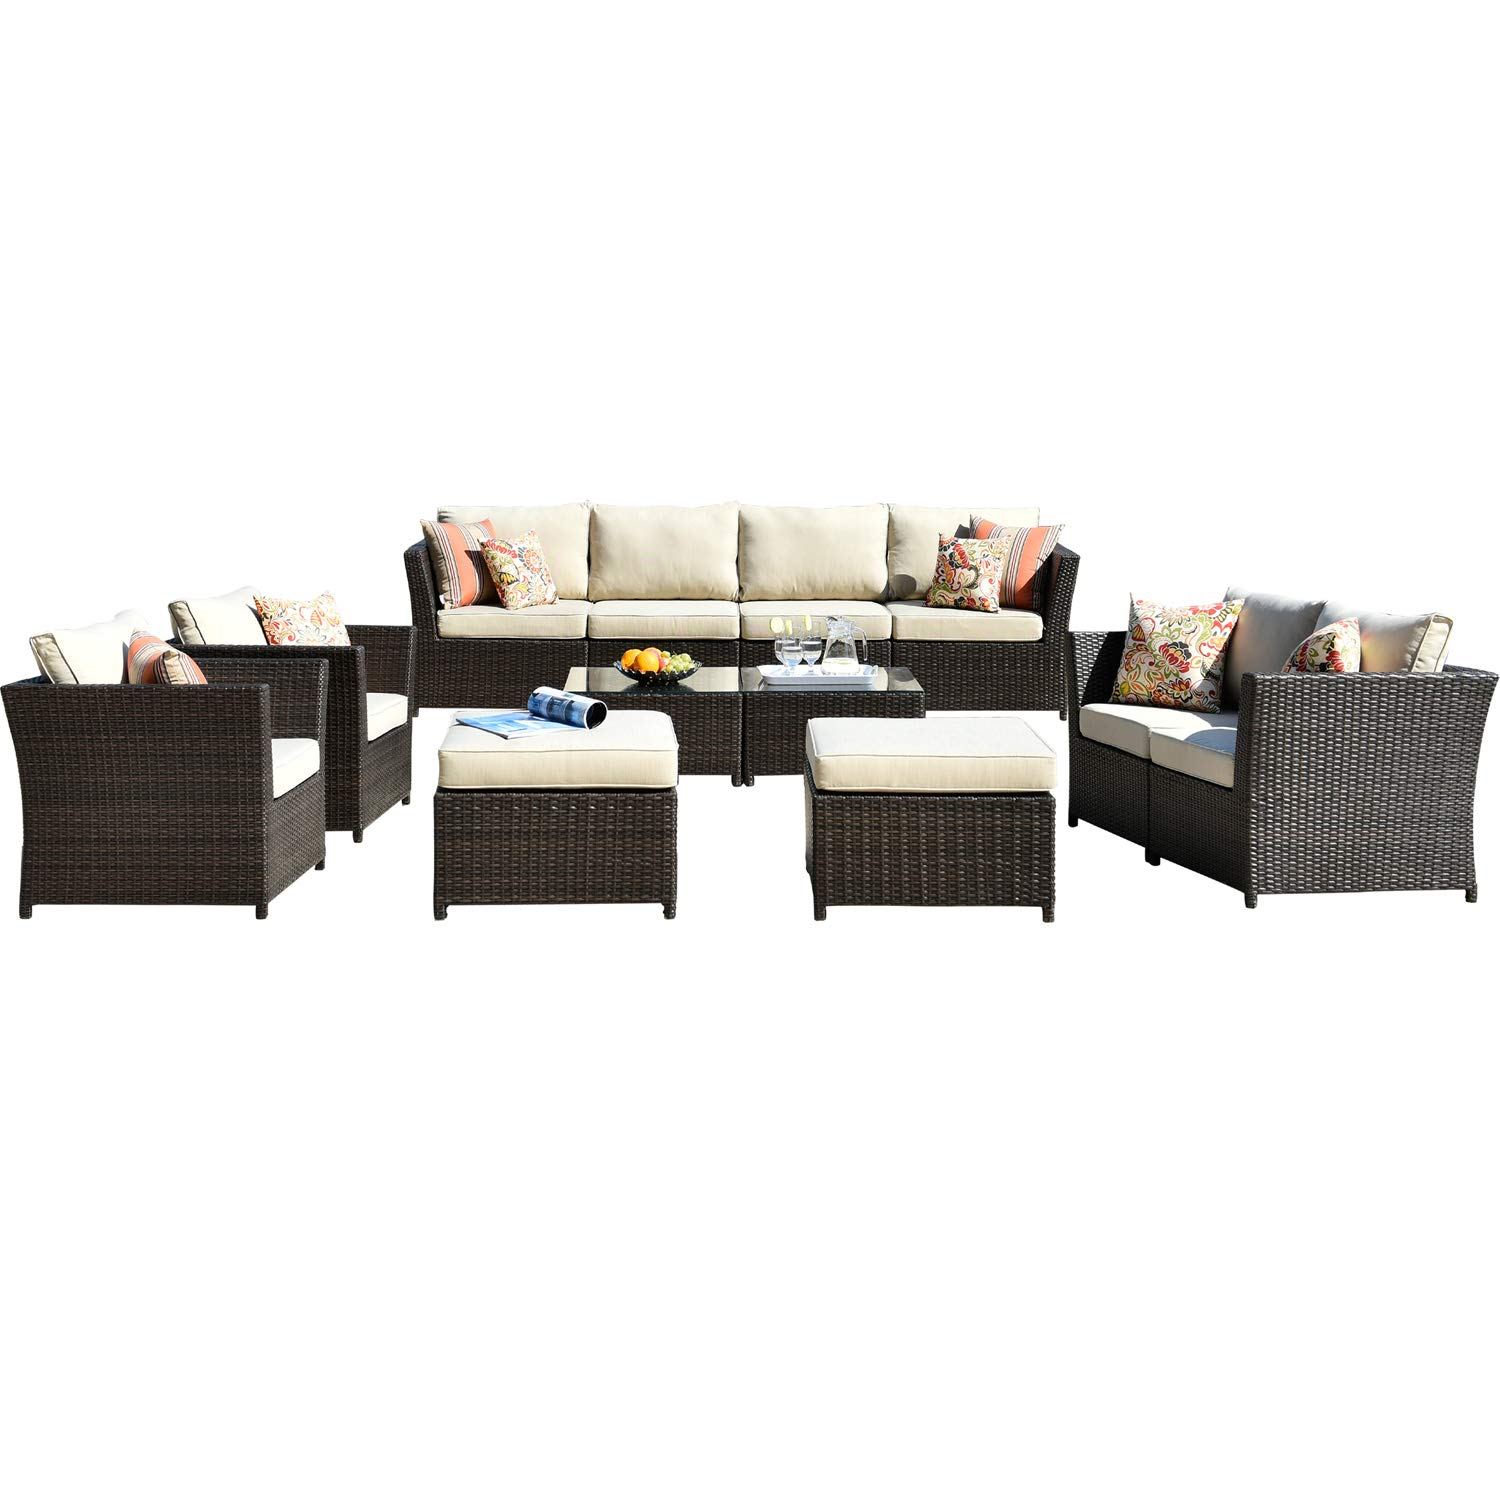 ovios Patio Furniture Set,Outdoor Furniture 12 Pcs Sets,PE Rattan Wicker sectional with 4 Pillows and 2 Patio Furniture Covers, No Assembly Required,Brown (12 Piece, Beige)